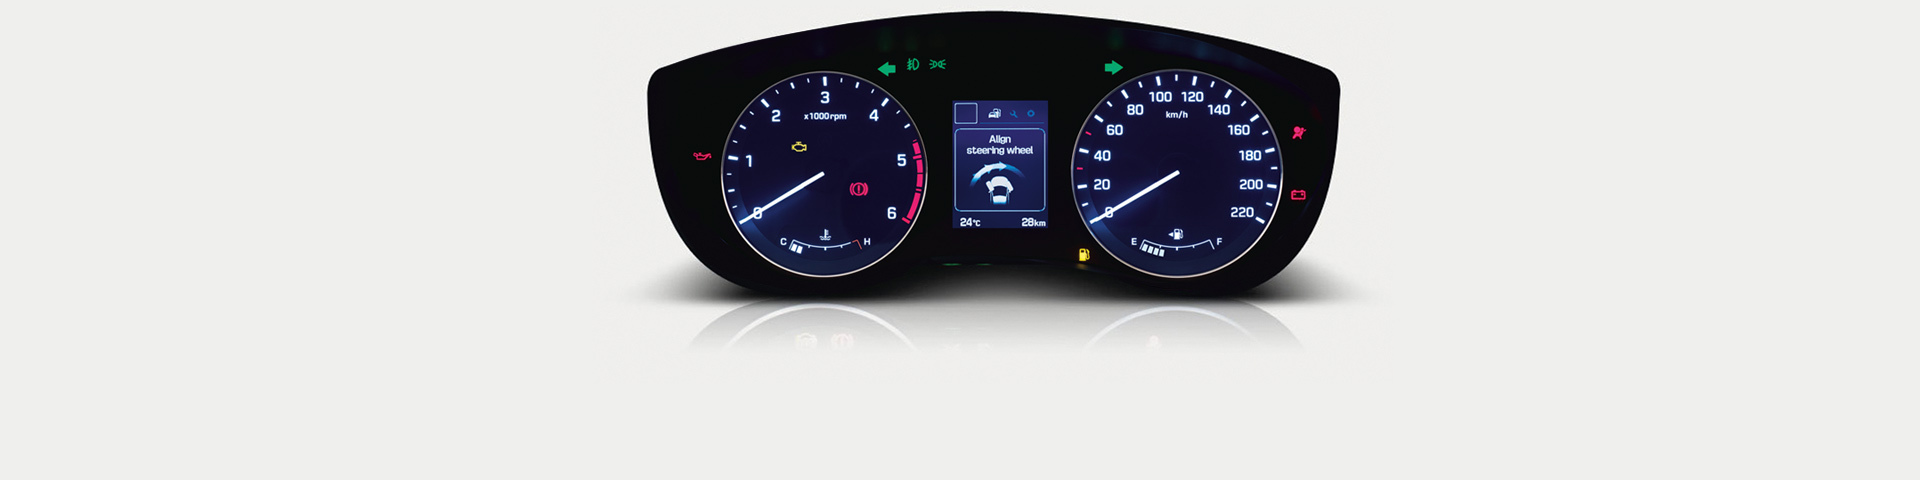 Hyundai Elite instrument cluster with MID